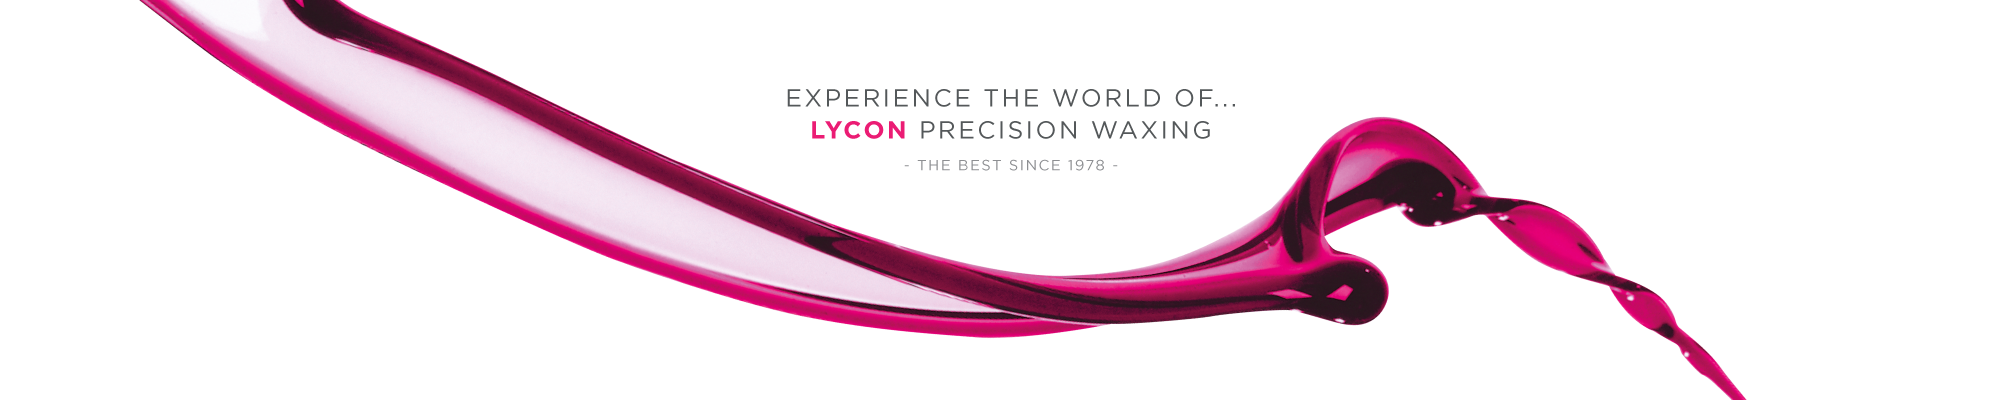 Lycon The Best Since 1978